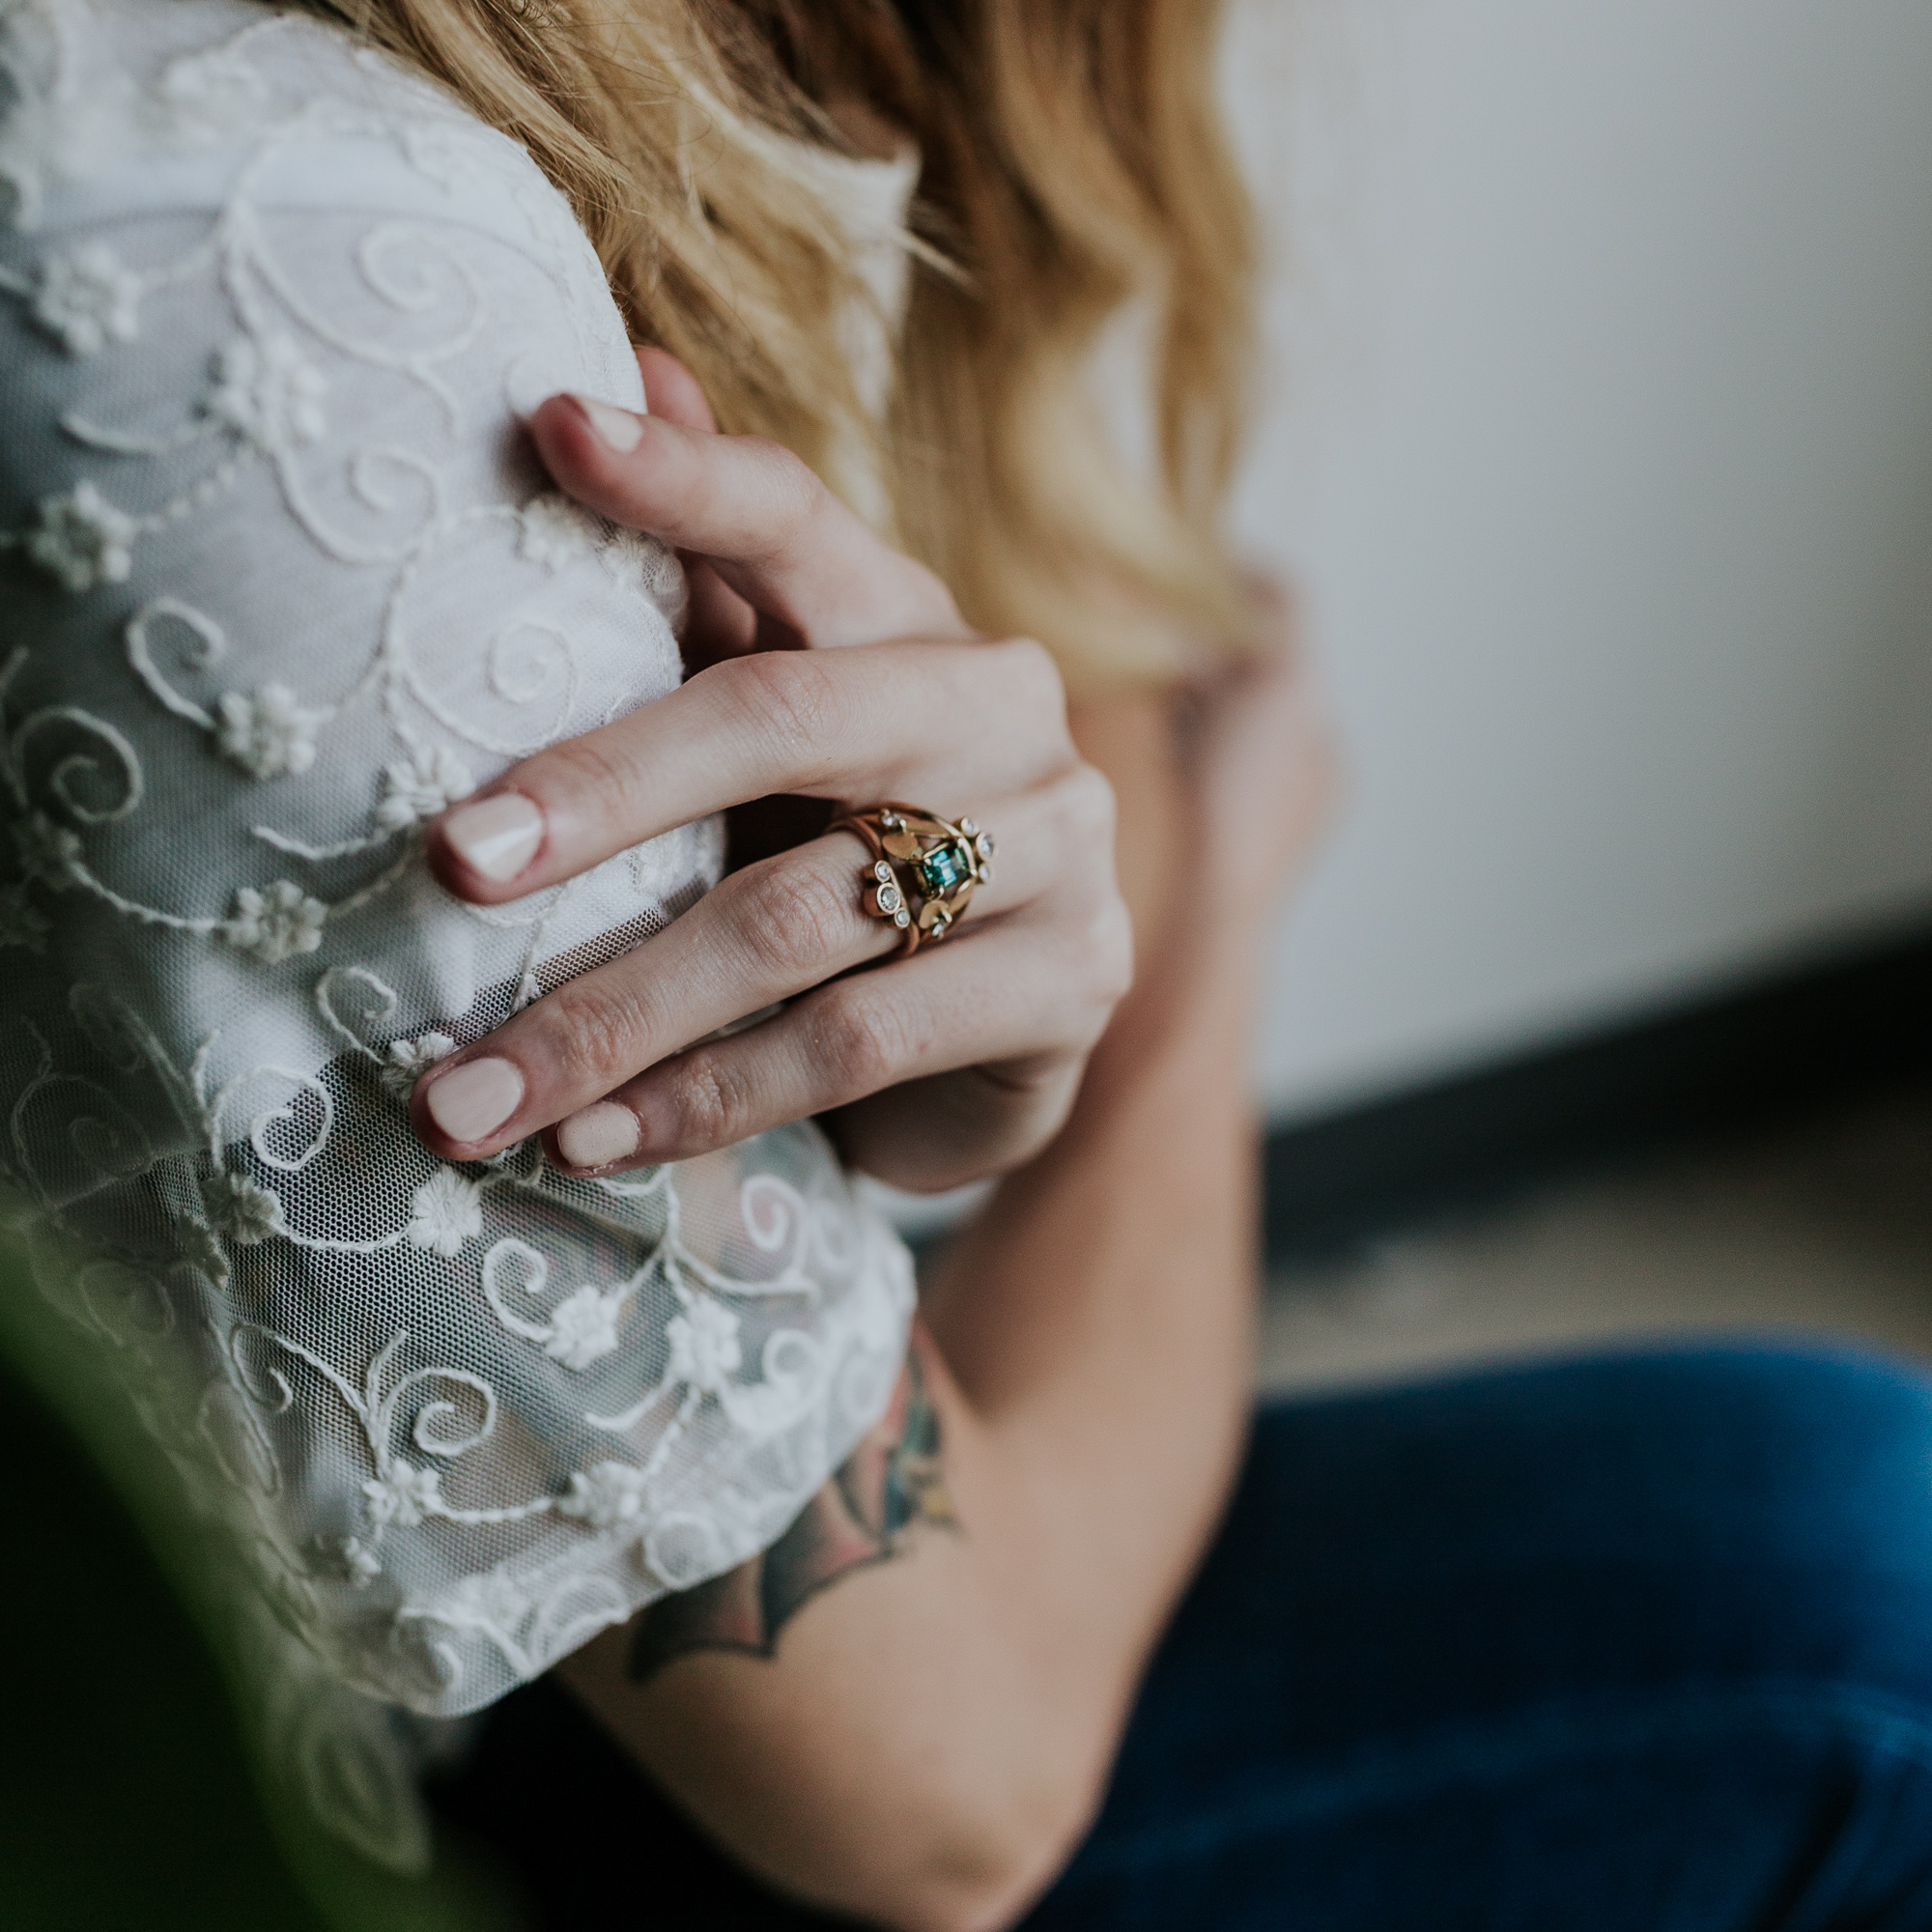 emily_hary_photography_katie_carder_social_size-57.jpg